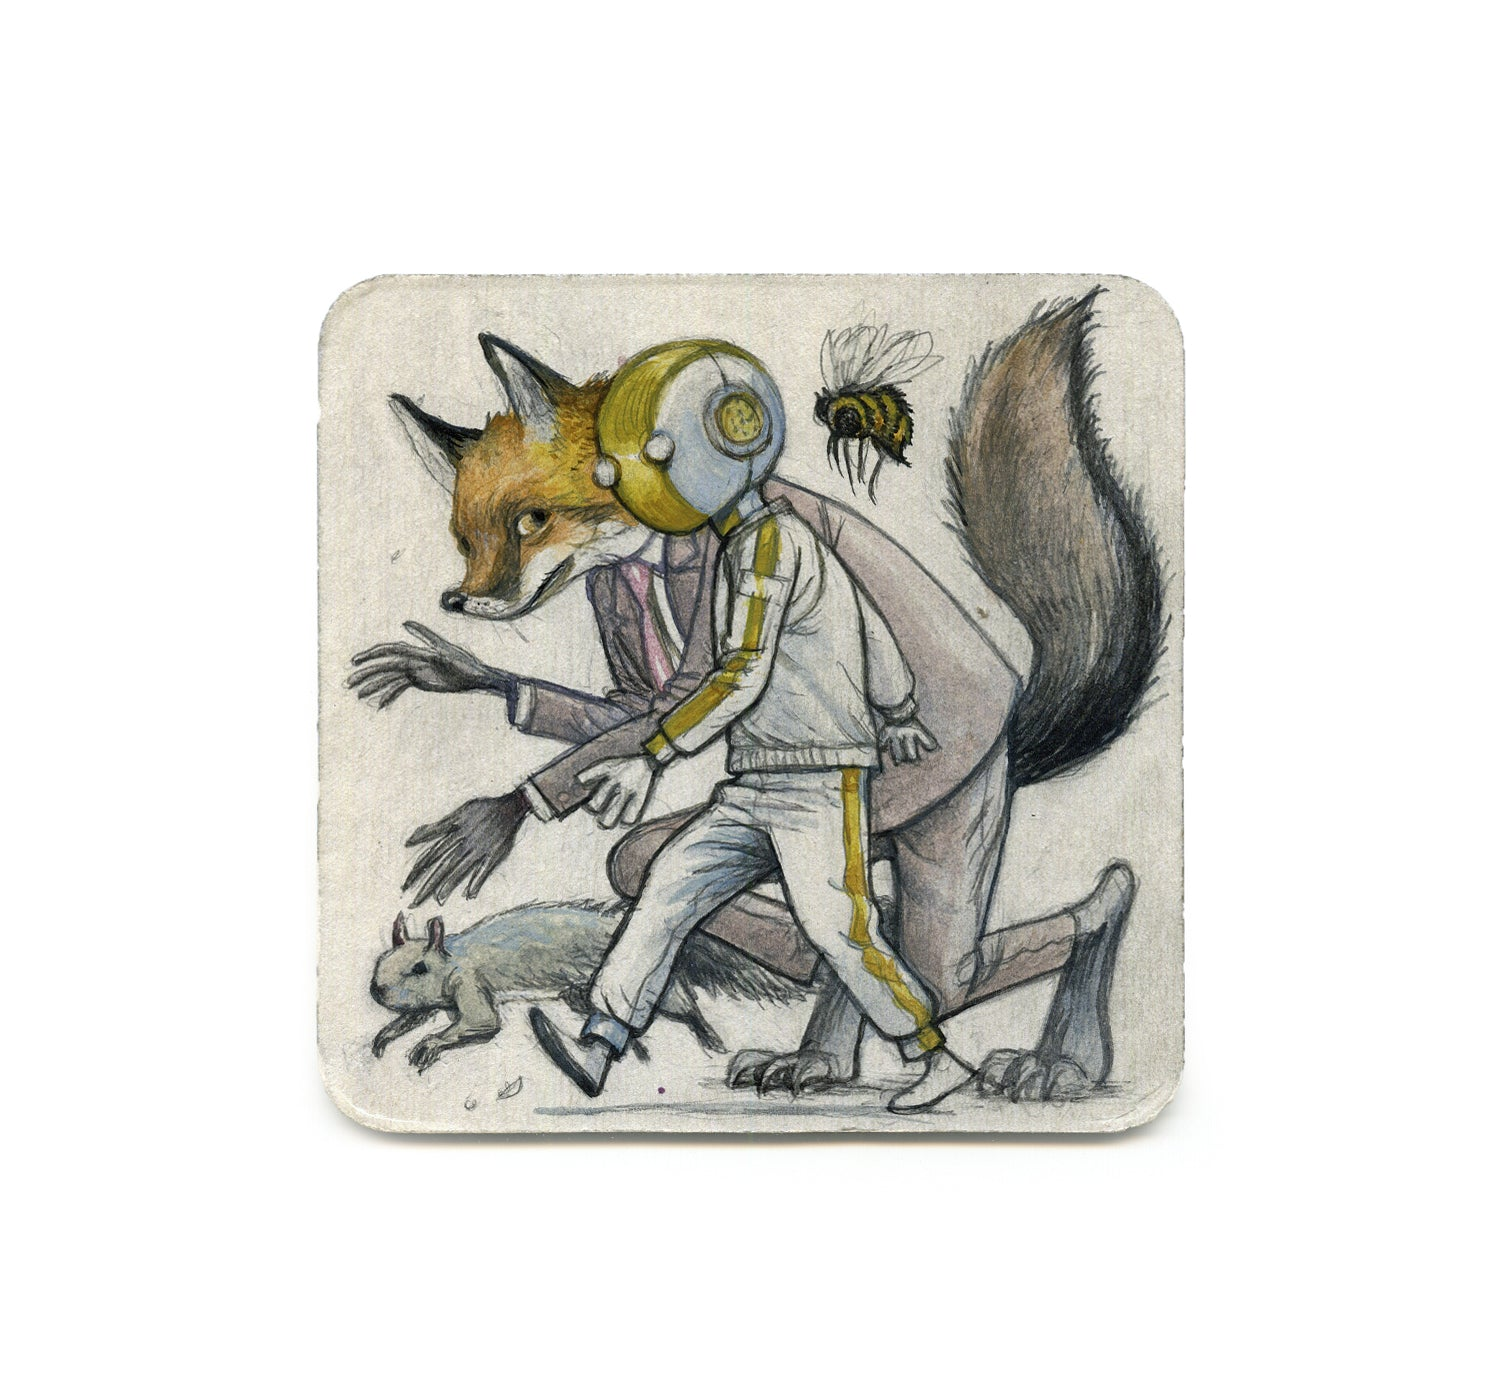 S2 Farel Dalrymple - Forgetting Jacked-Up Everything Coaster